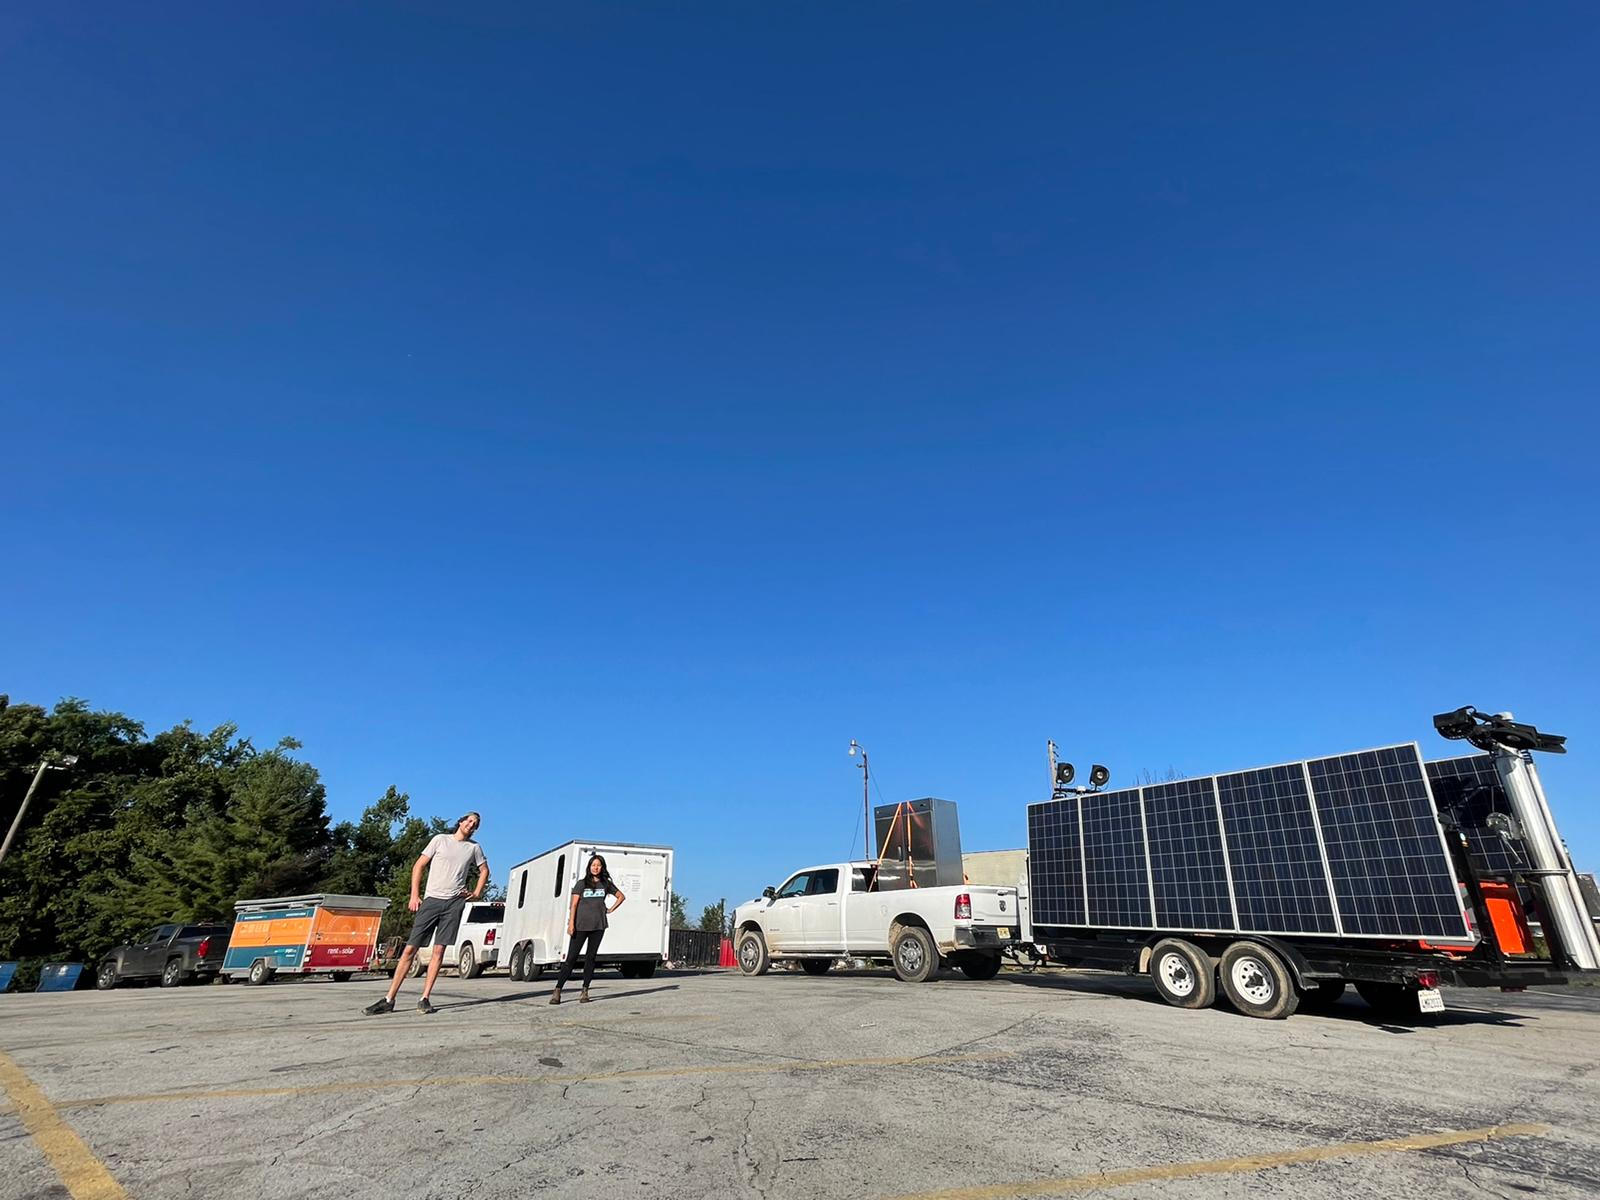 Solar cavalry on the road